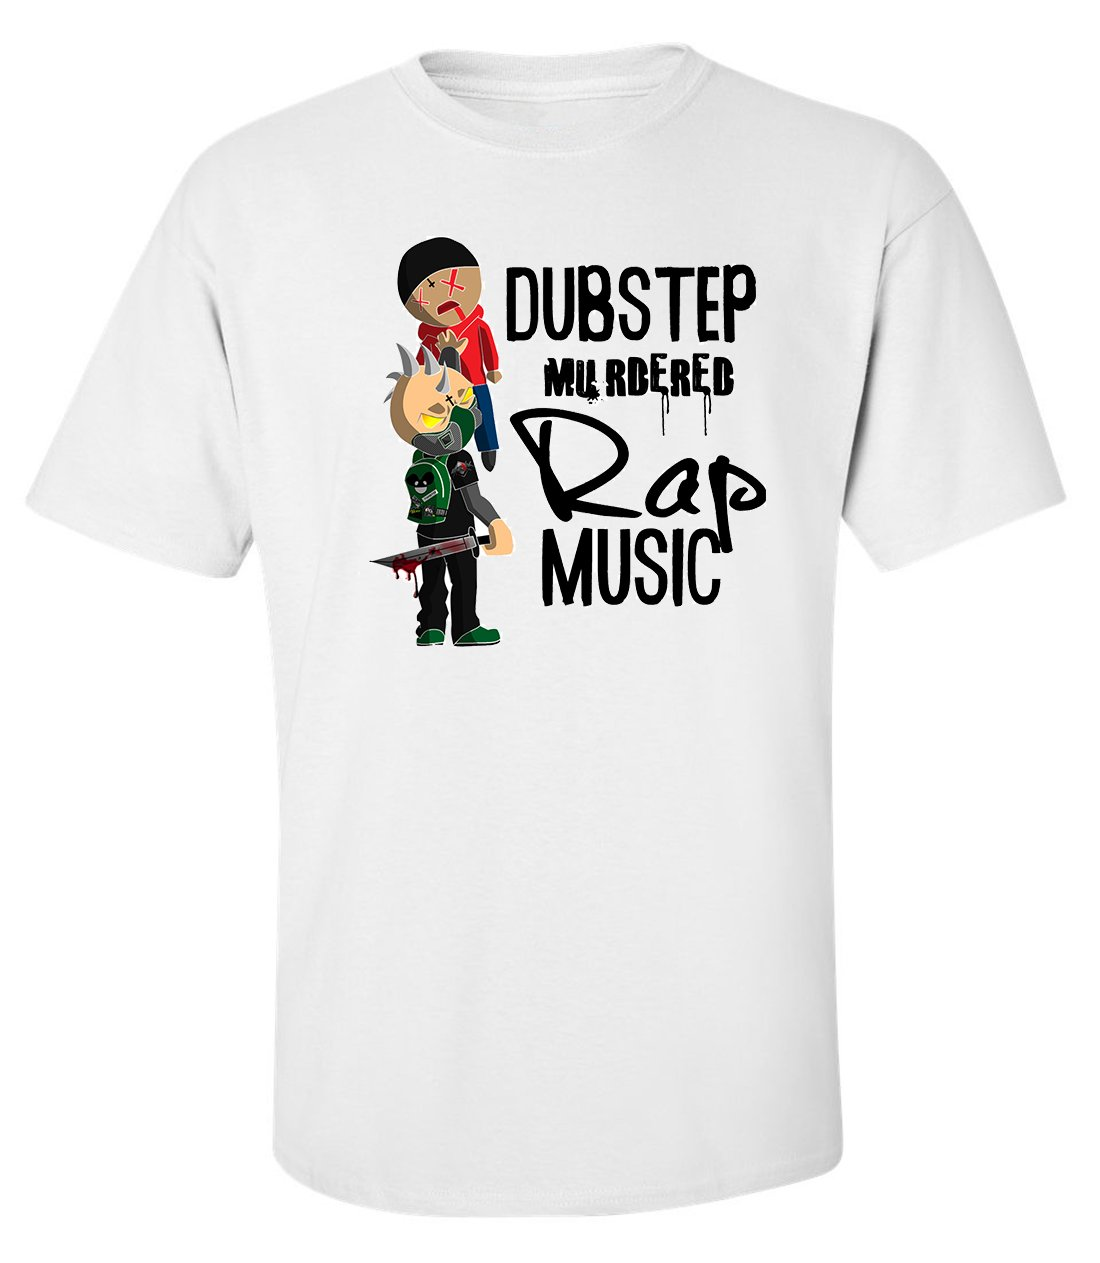 Dubstep murdered rap music men printed white cotton t-shirt size M